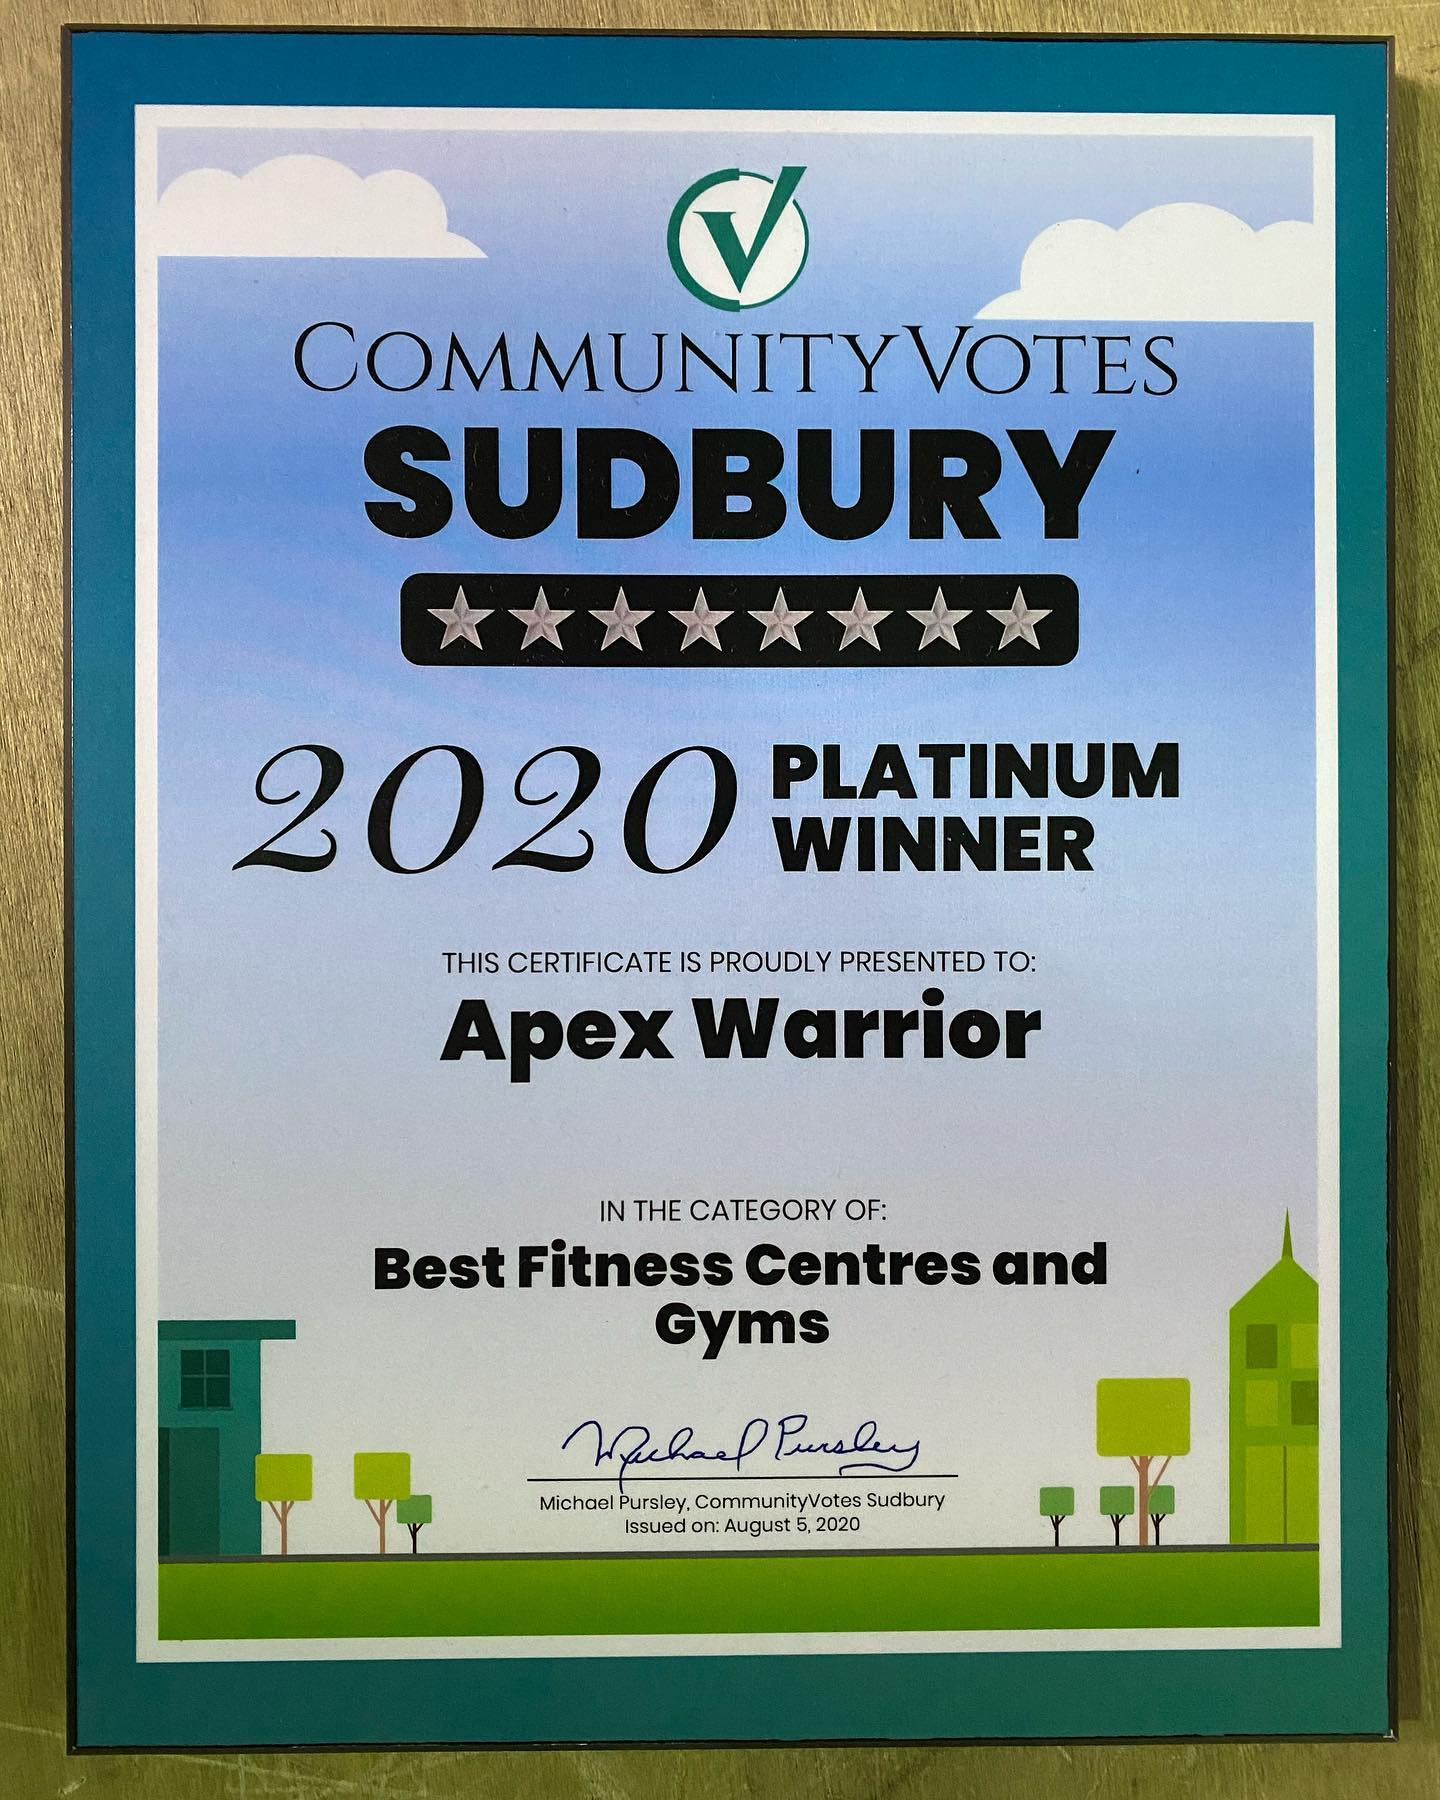 Certificate showing Apex Warrior won best fitness centre and gym in Sudbury in 2020